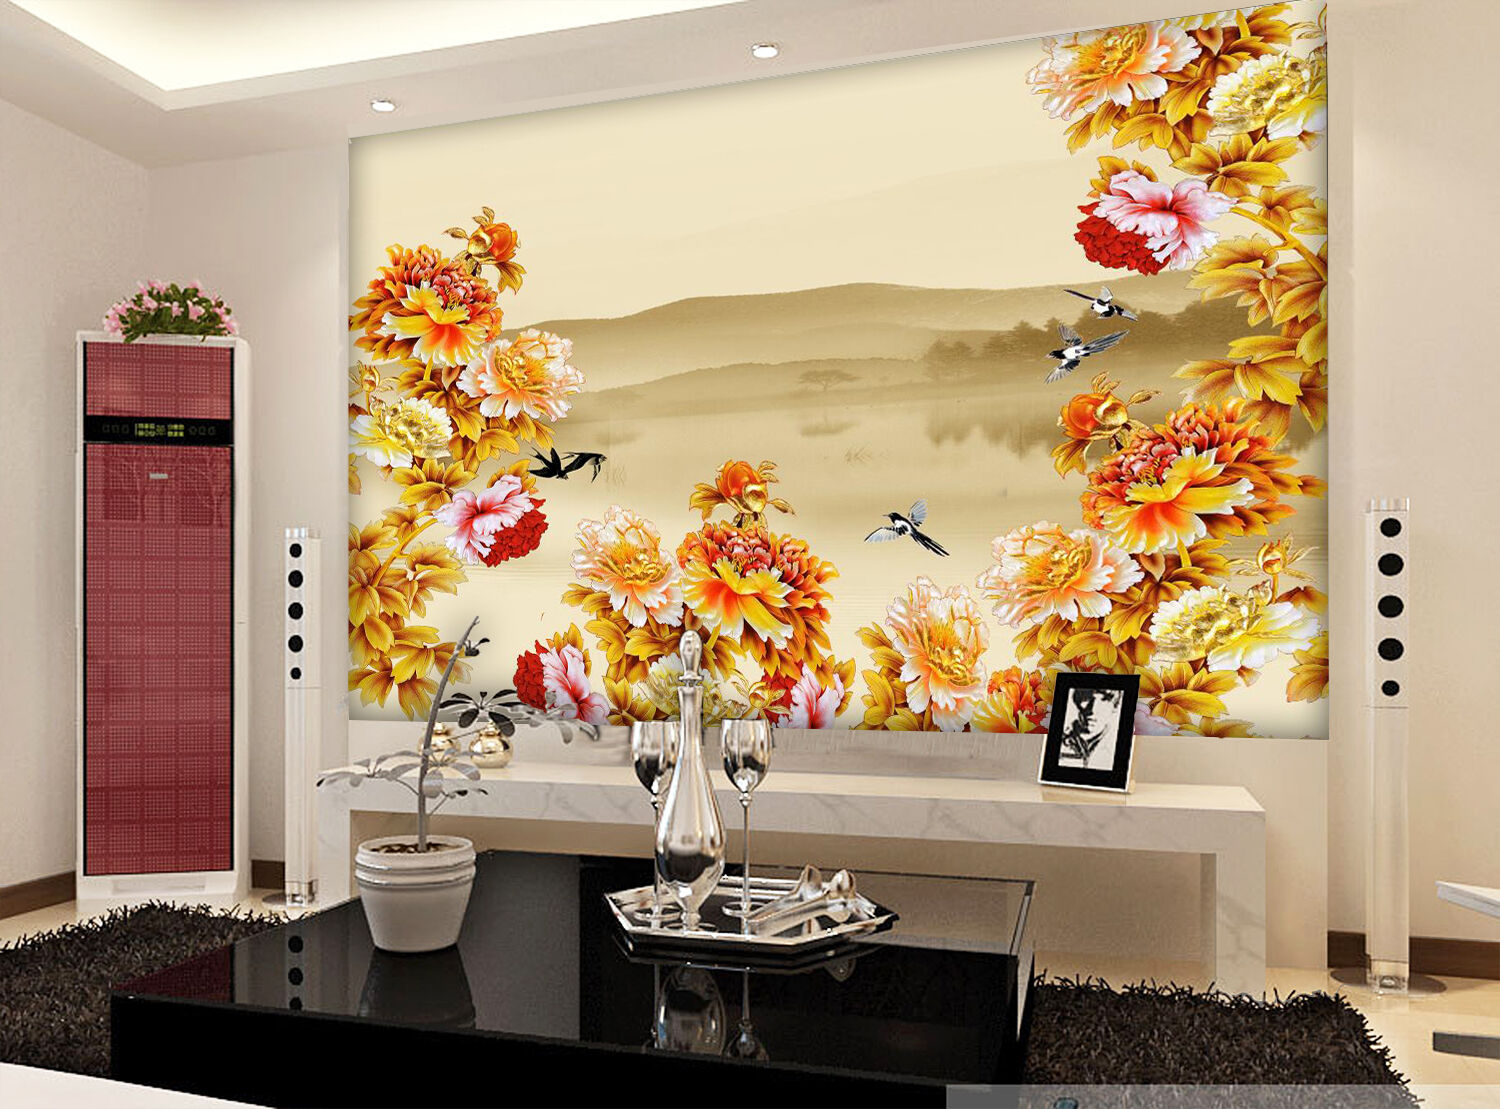 3D Gelb Flower Painting 9 Wallpaper Mural Paper Wall Print Wallpaper Murals UK